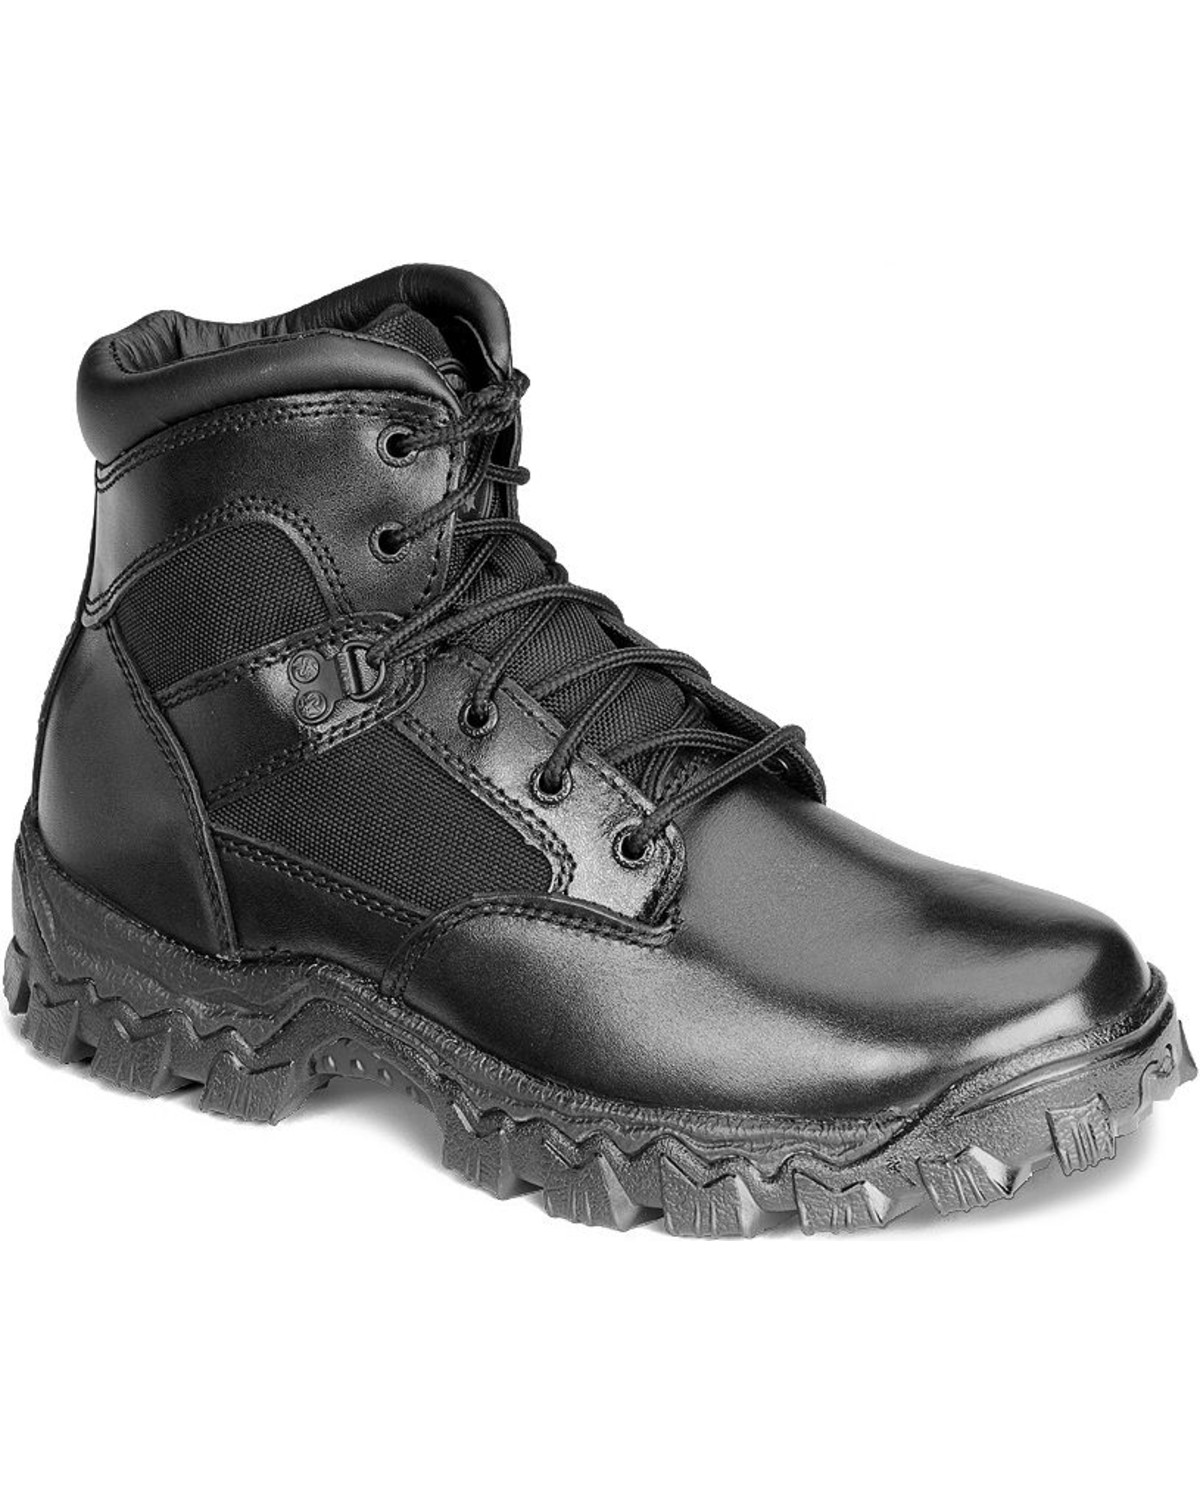 Alpha Force Duty Military Boots